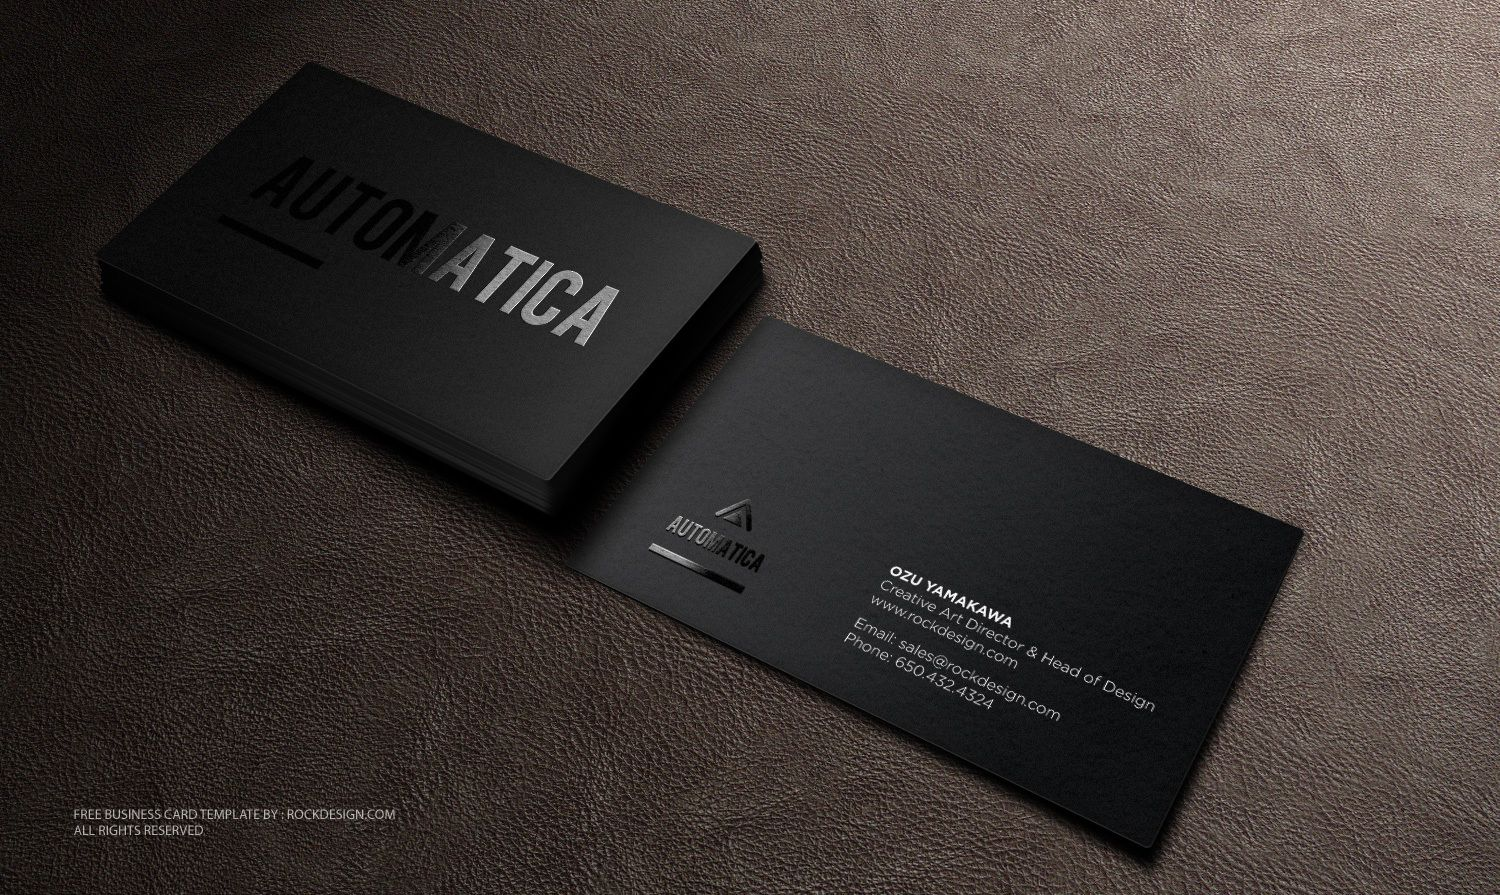 Black business card template download free design templates black business card template download free design templates accmission Image collections